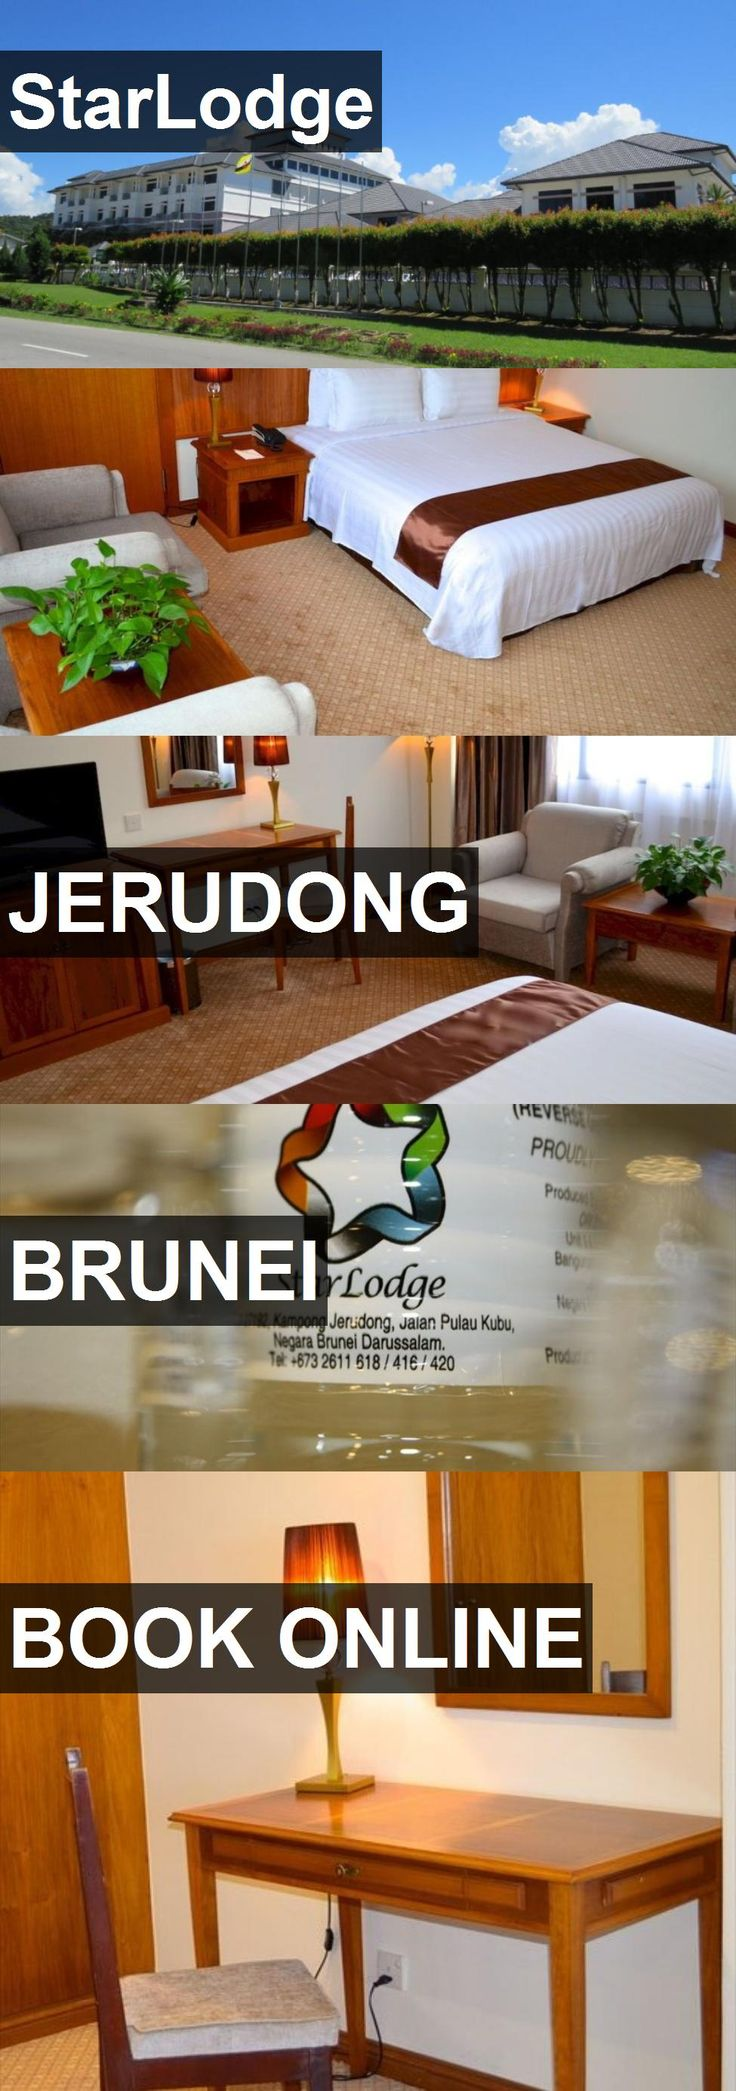 Hotel StarLodge in Jerudong, Brunei. For more information, photos, reviews and best prices please follow the link. #Brunei #Jerudong #hotel #travel #vacation